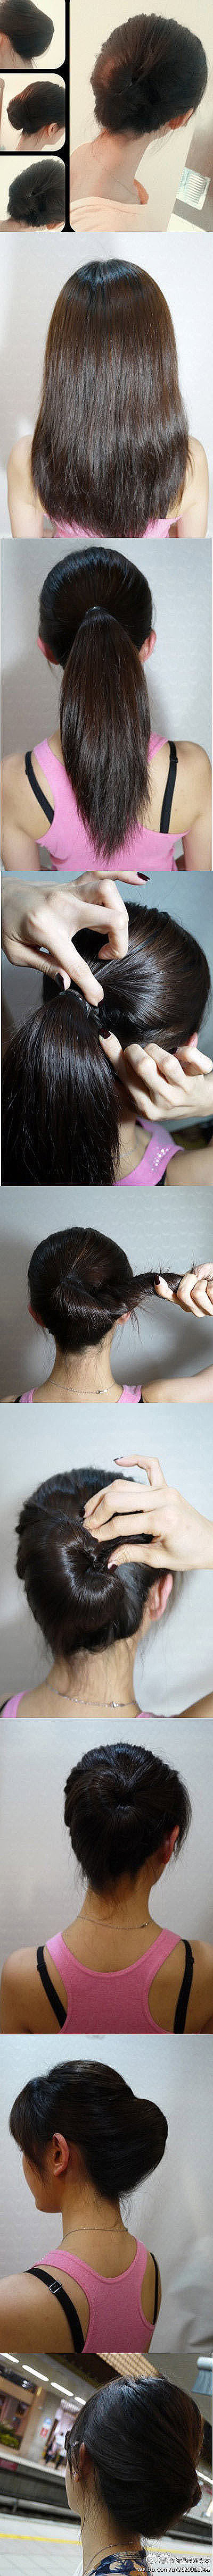 Tucked in hair hair modern country pinterest hair style